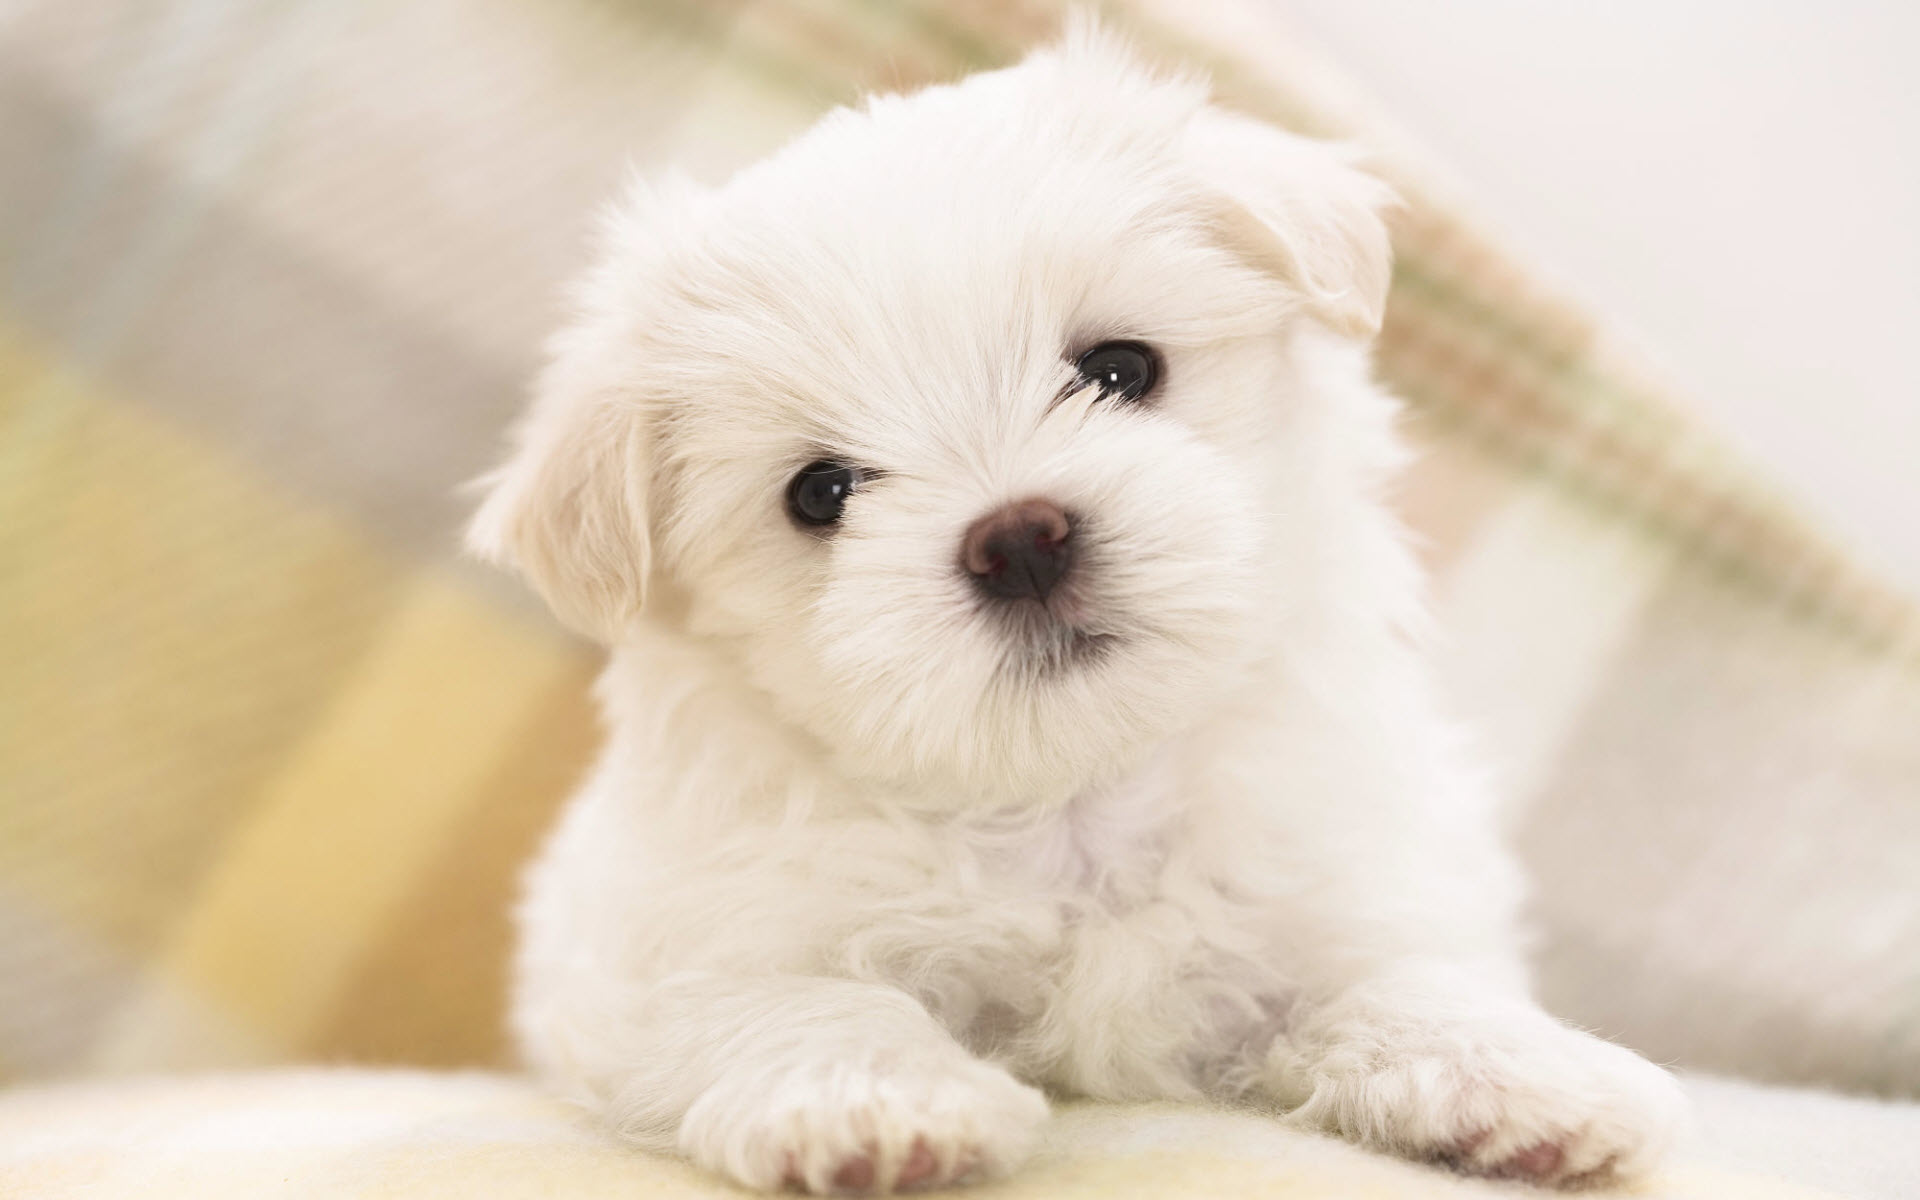 Maltese Puppy Wallpapers HD Wallpapers 1920x1200